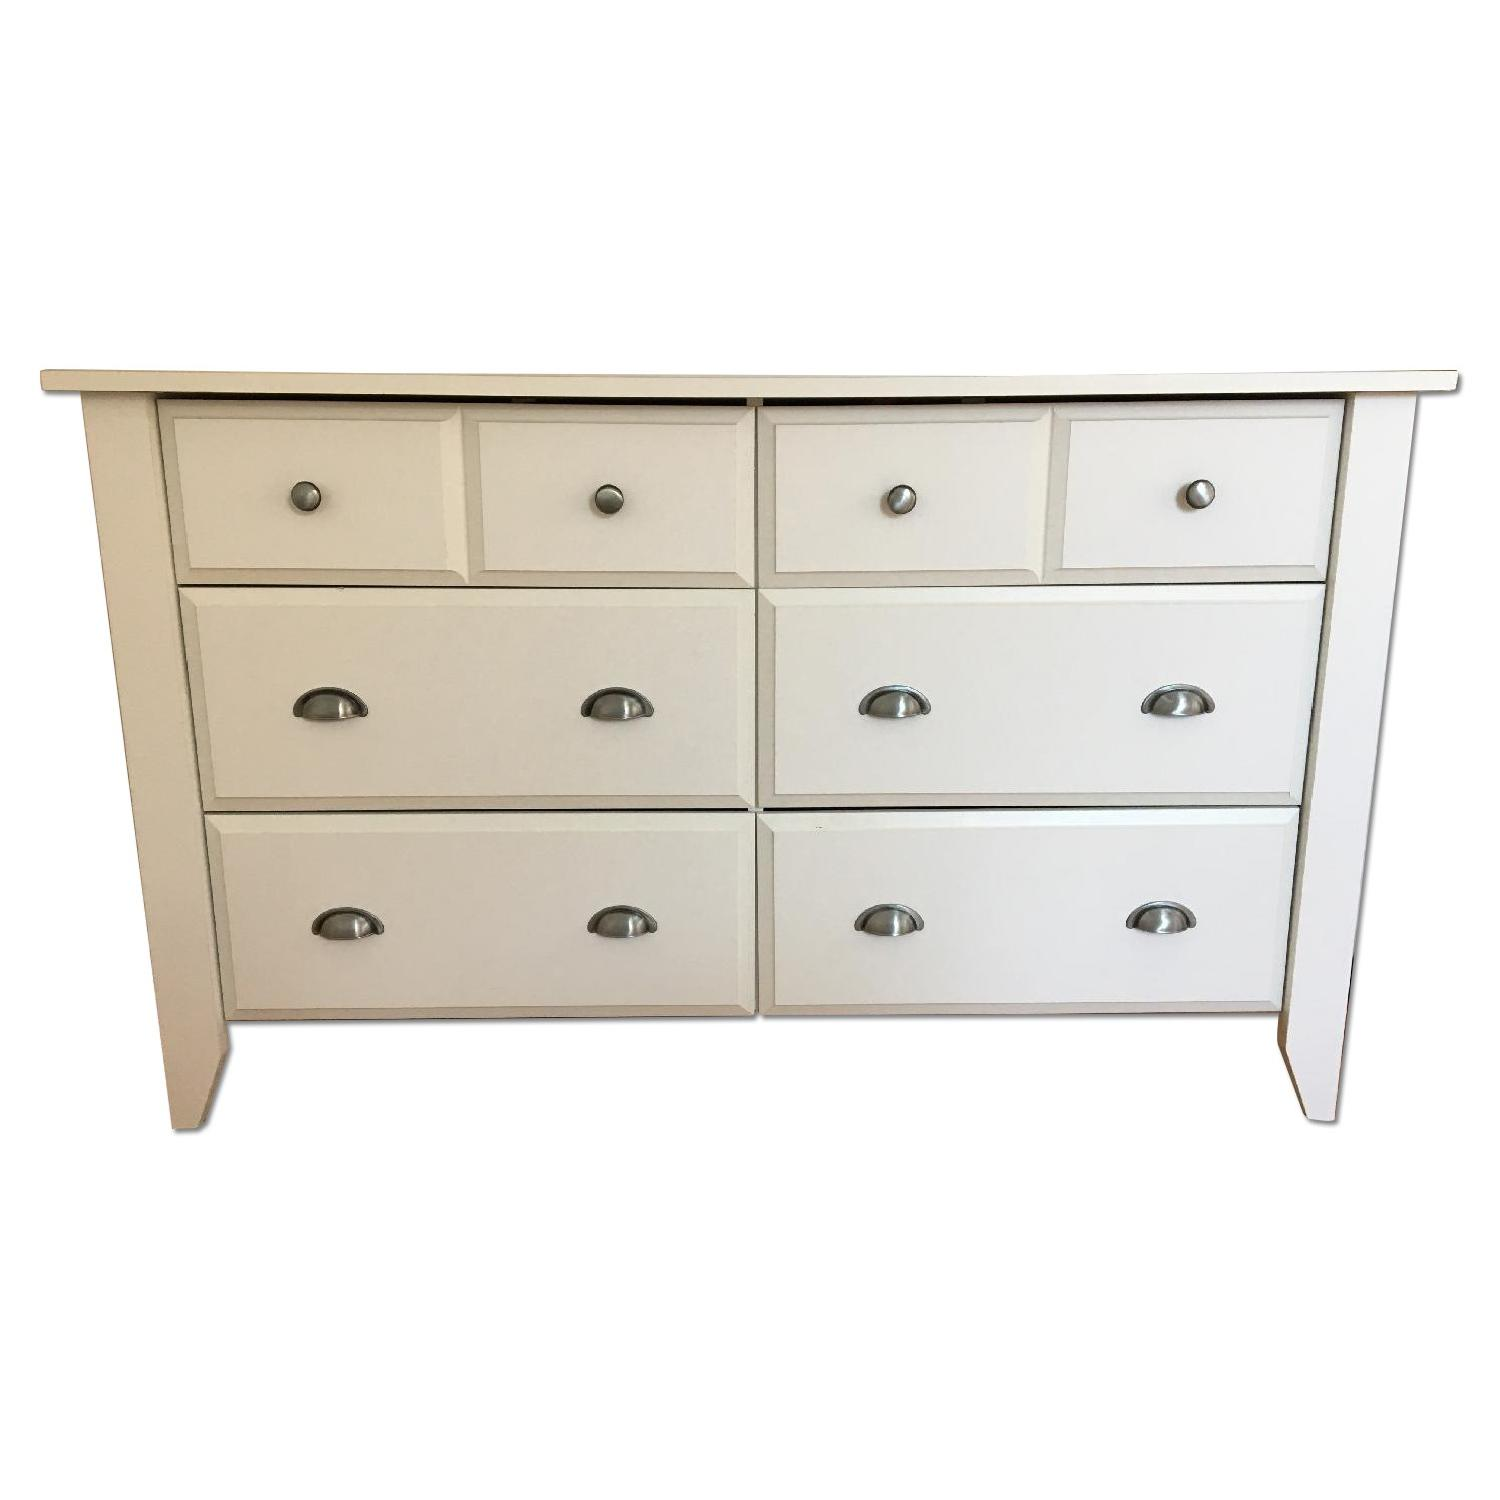 Sauder Shoal Creek Dresser in Soft White finish - image-0